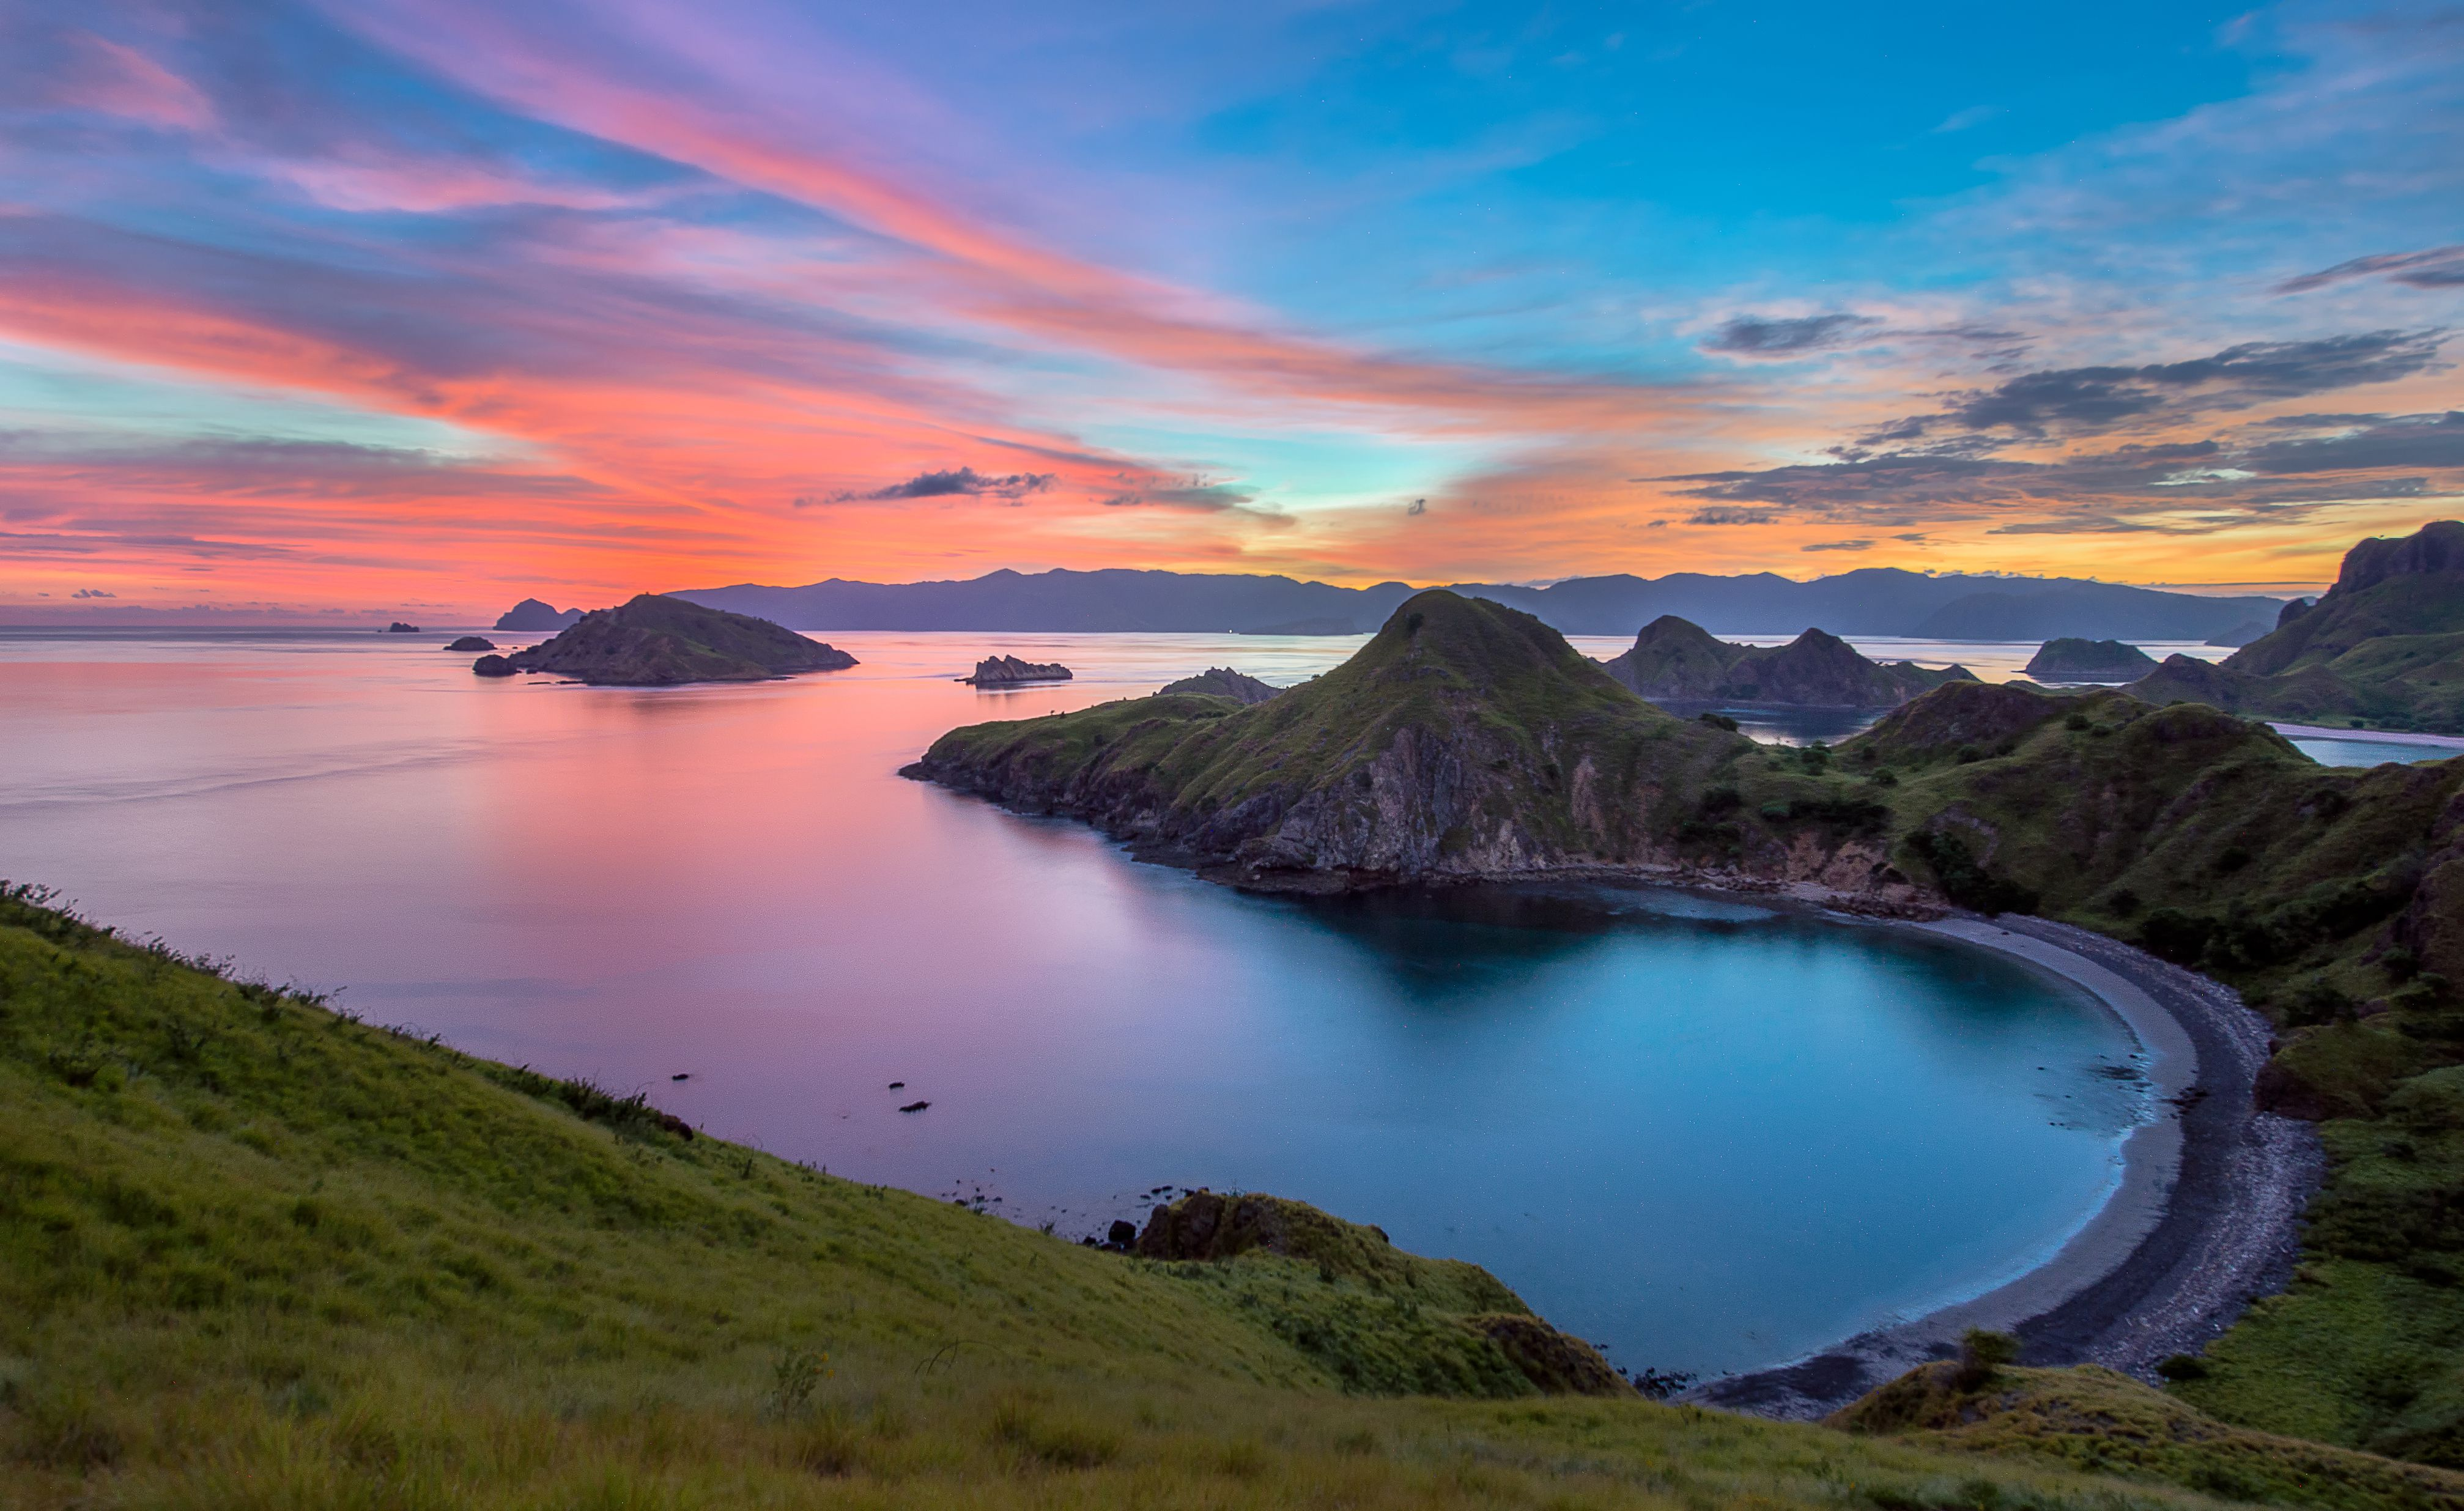 Labuan Bajo, Gateway to Indonesia's Komodo Dragons